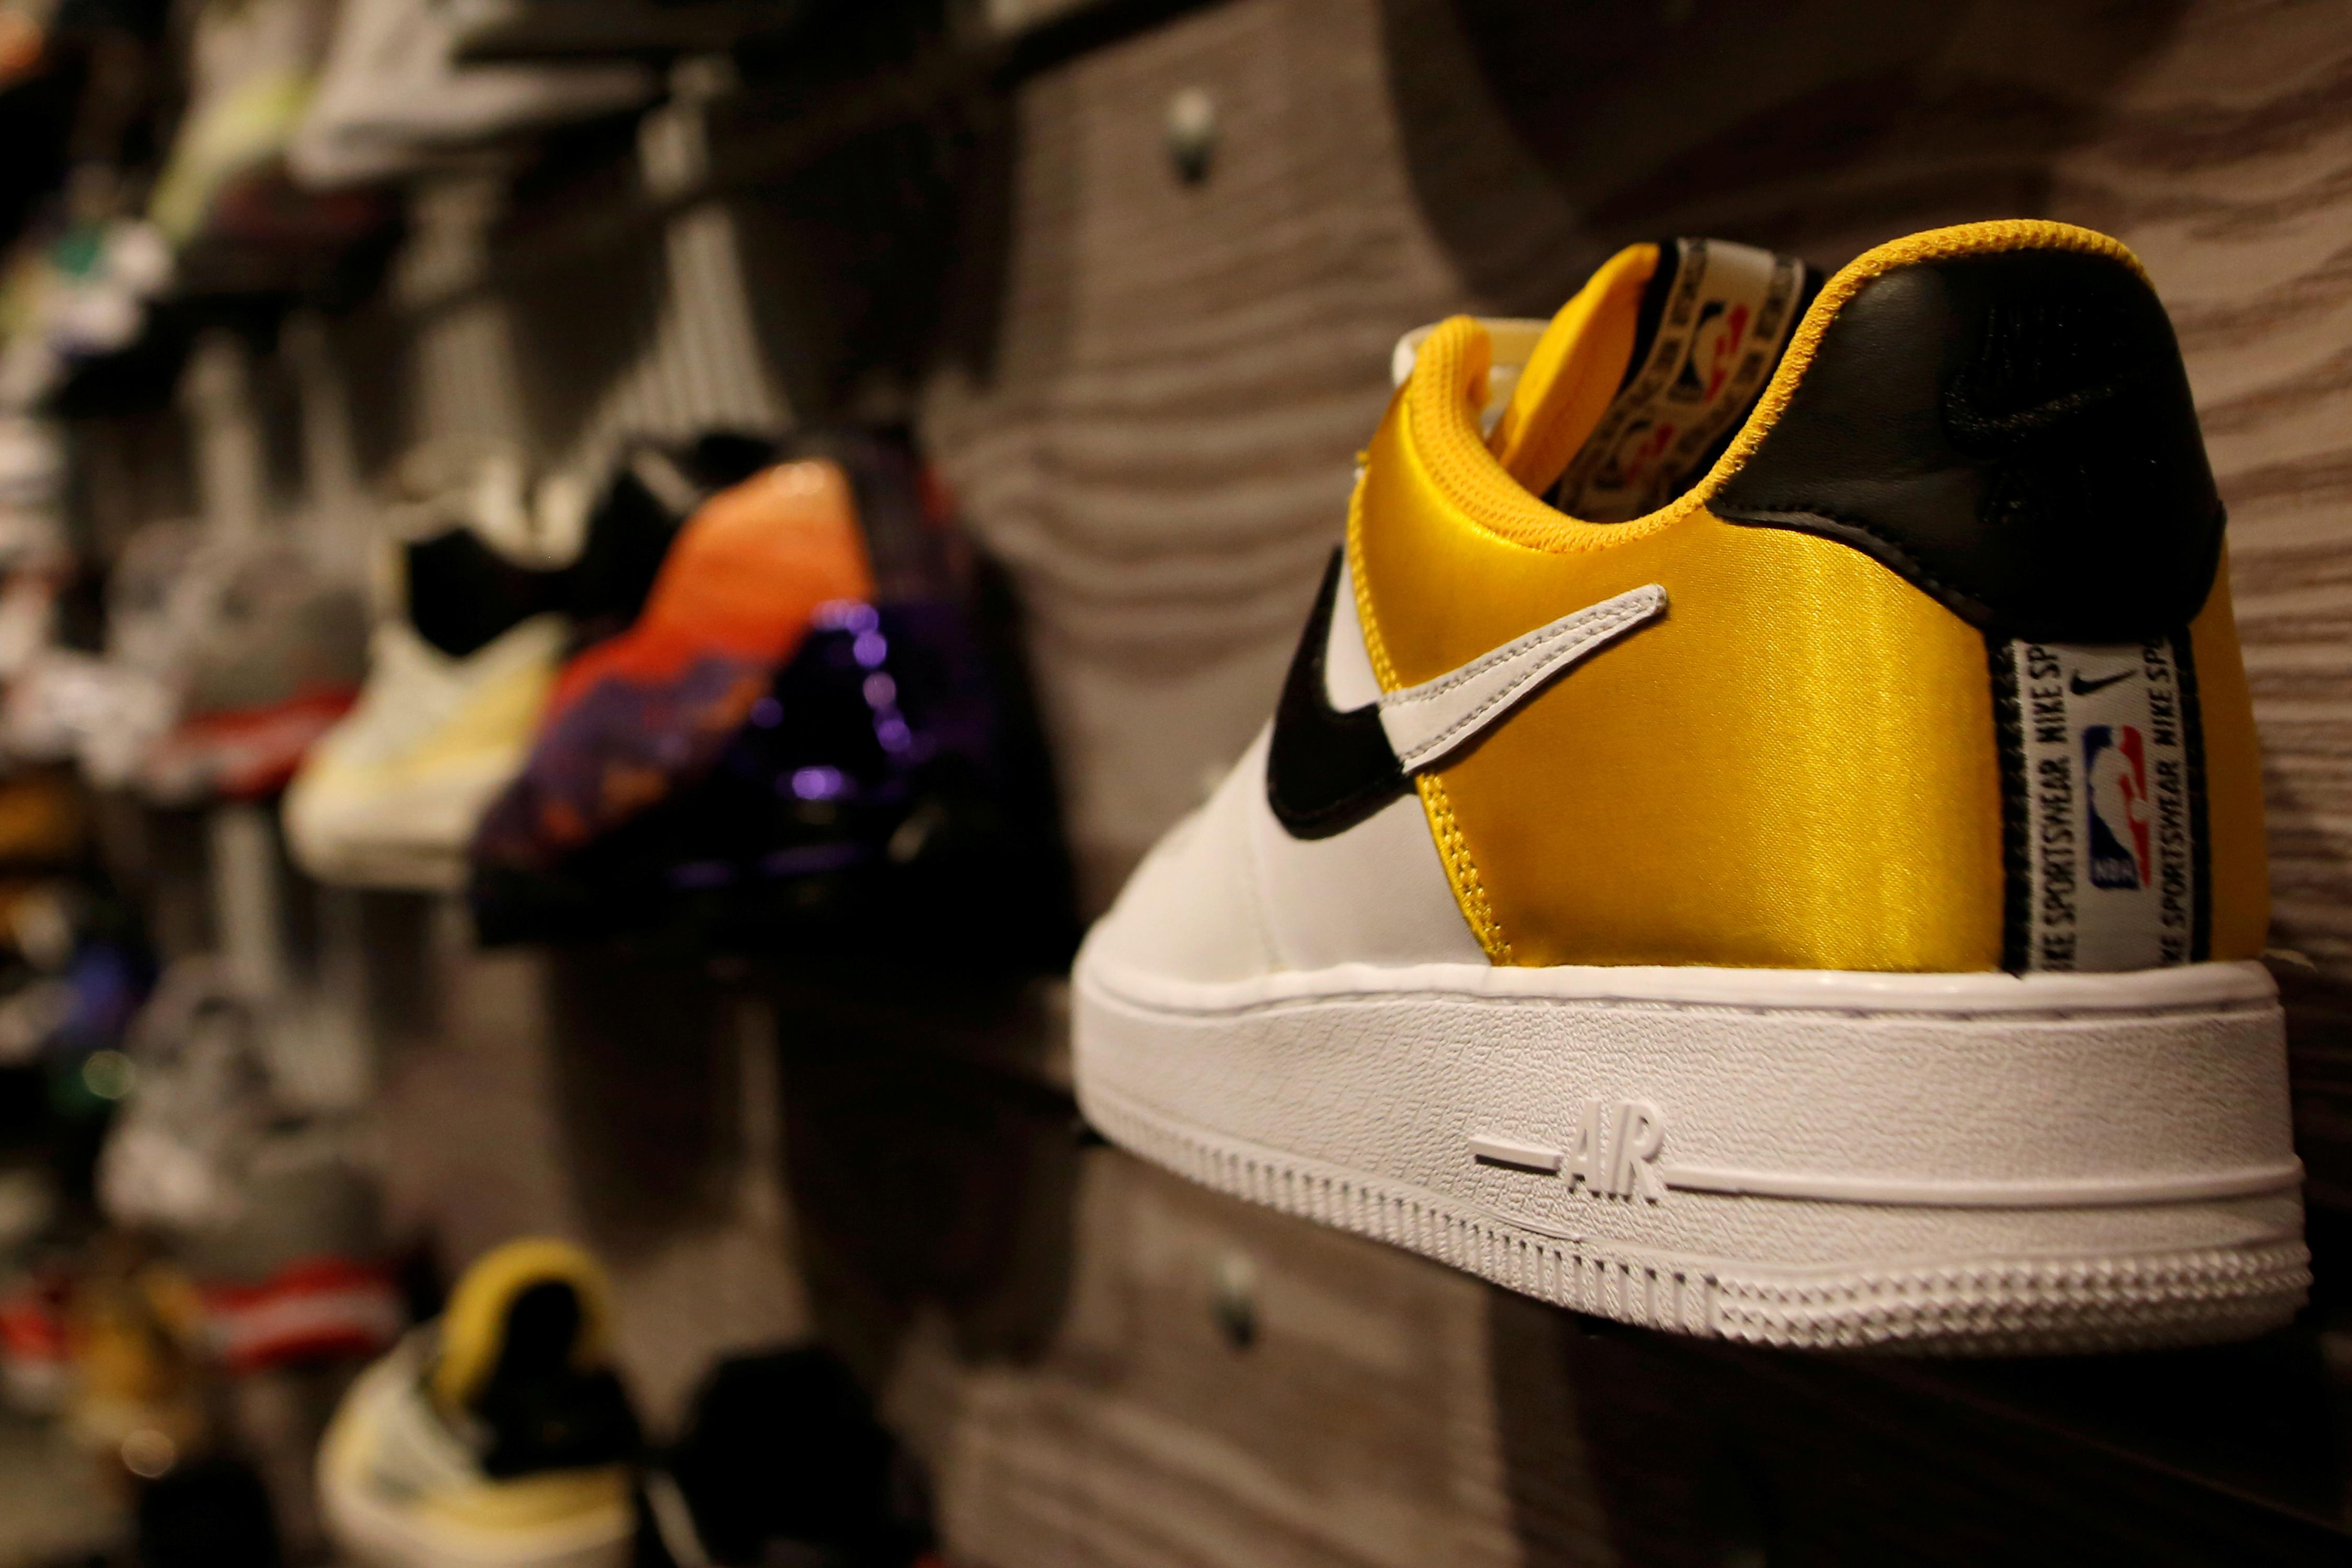 Technical foul: Chinese traders in online sneaker market punish NBA...